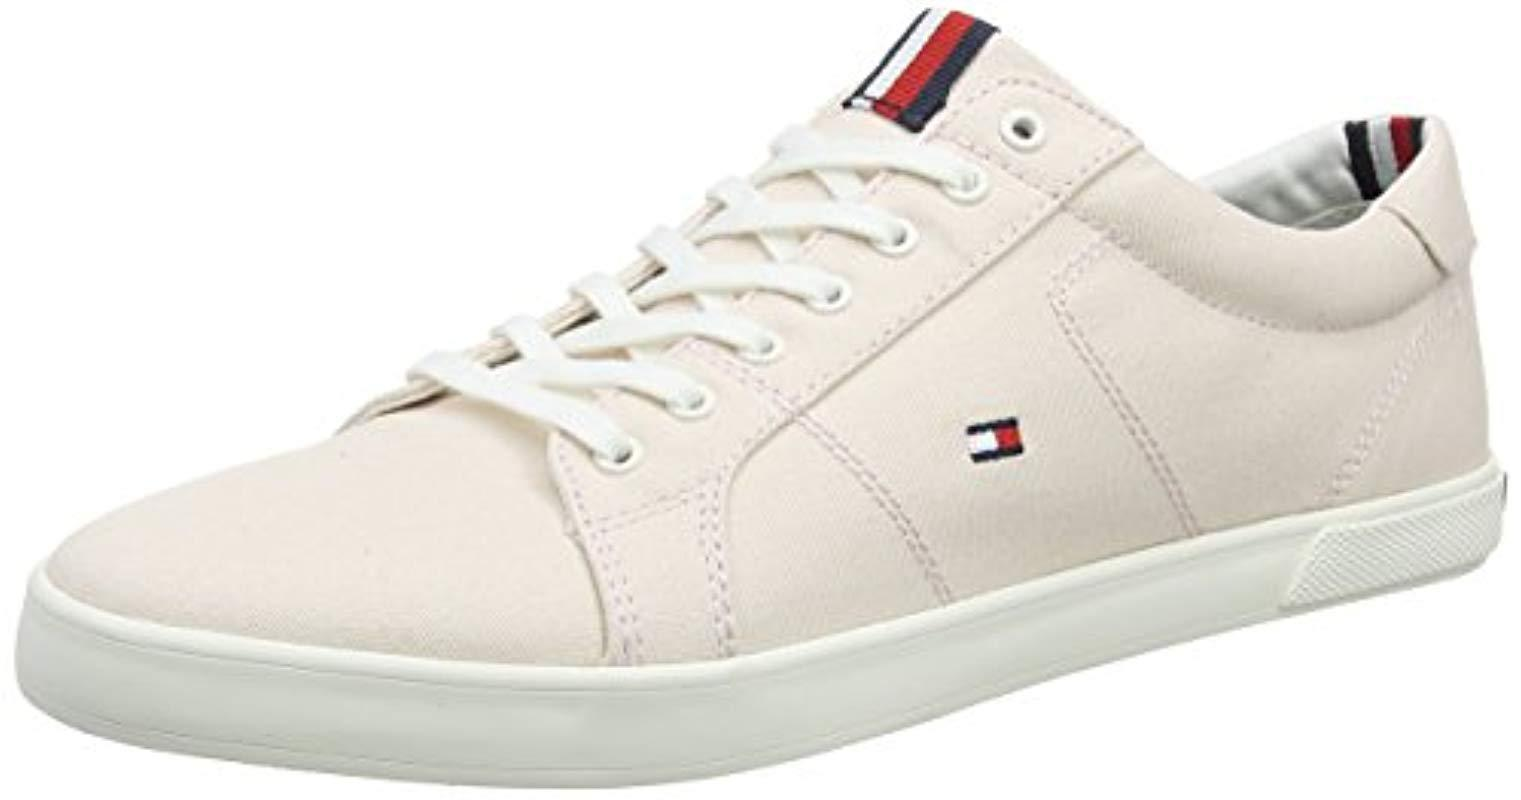 5c341cee90ab Tommy Hilfiger  s Iconic Long Lace Sneaker Low-top Grey for Men - Lyst